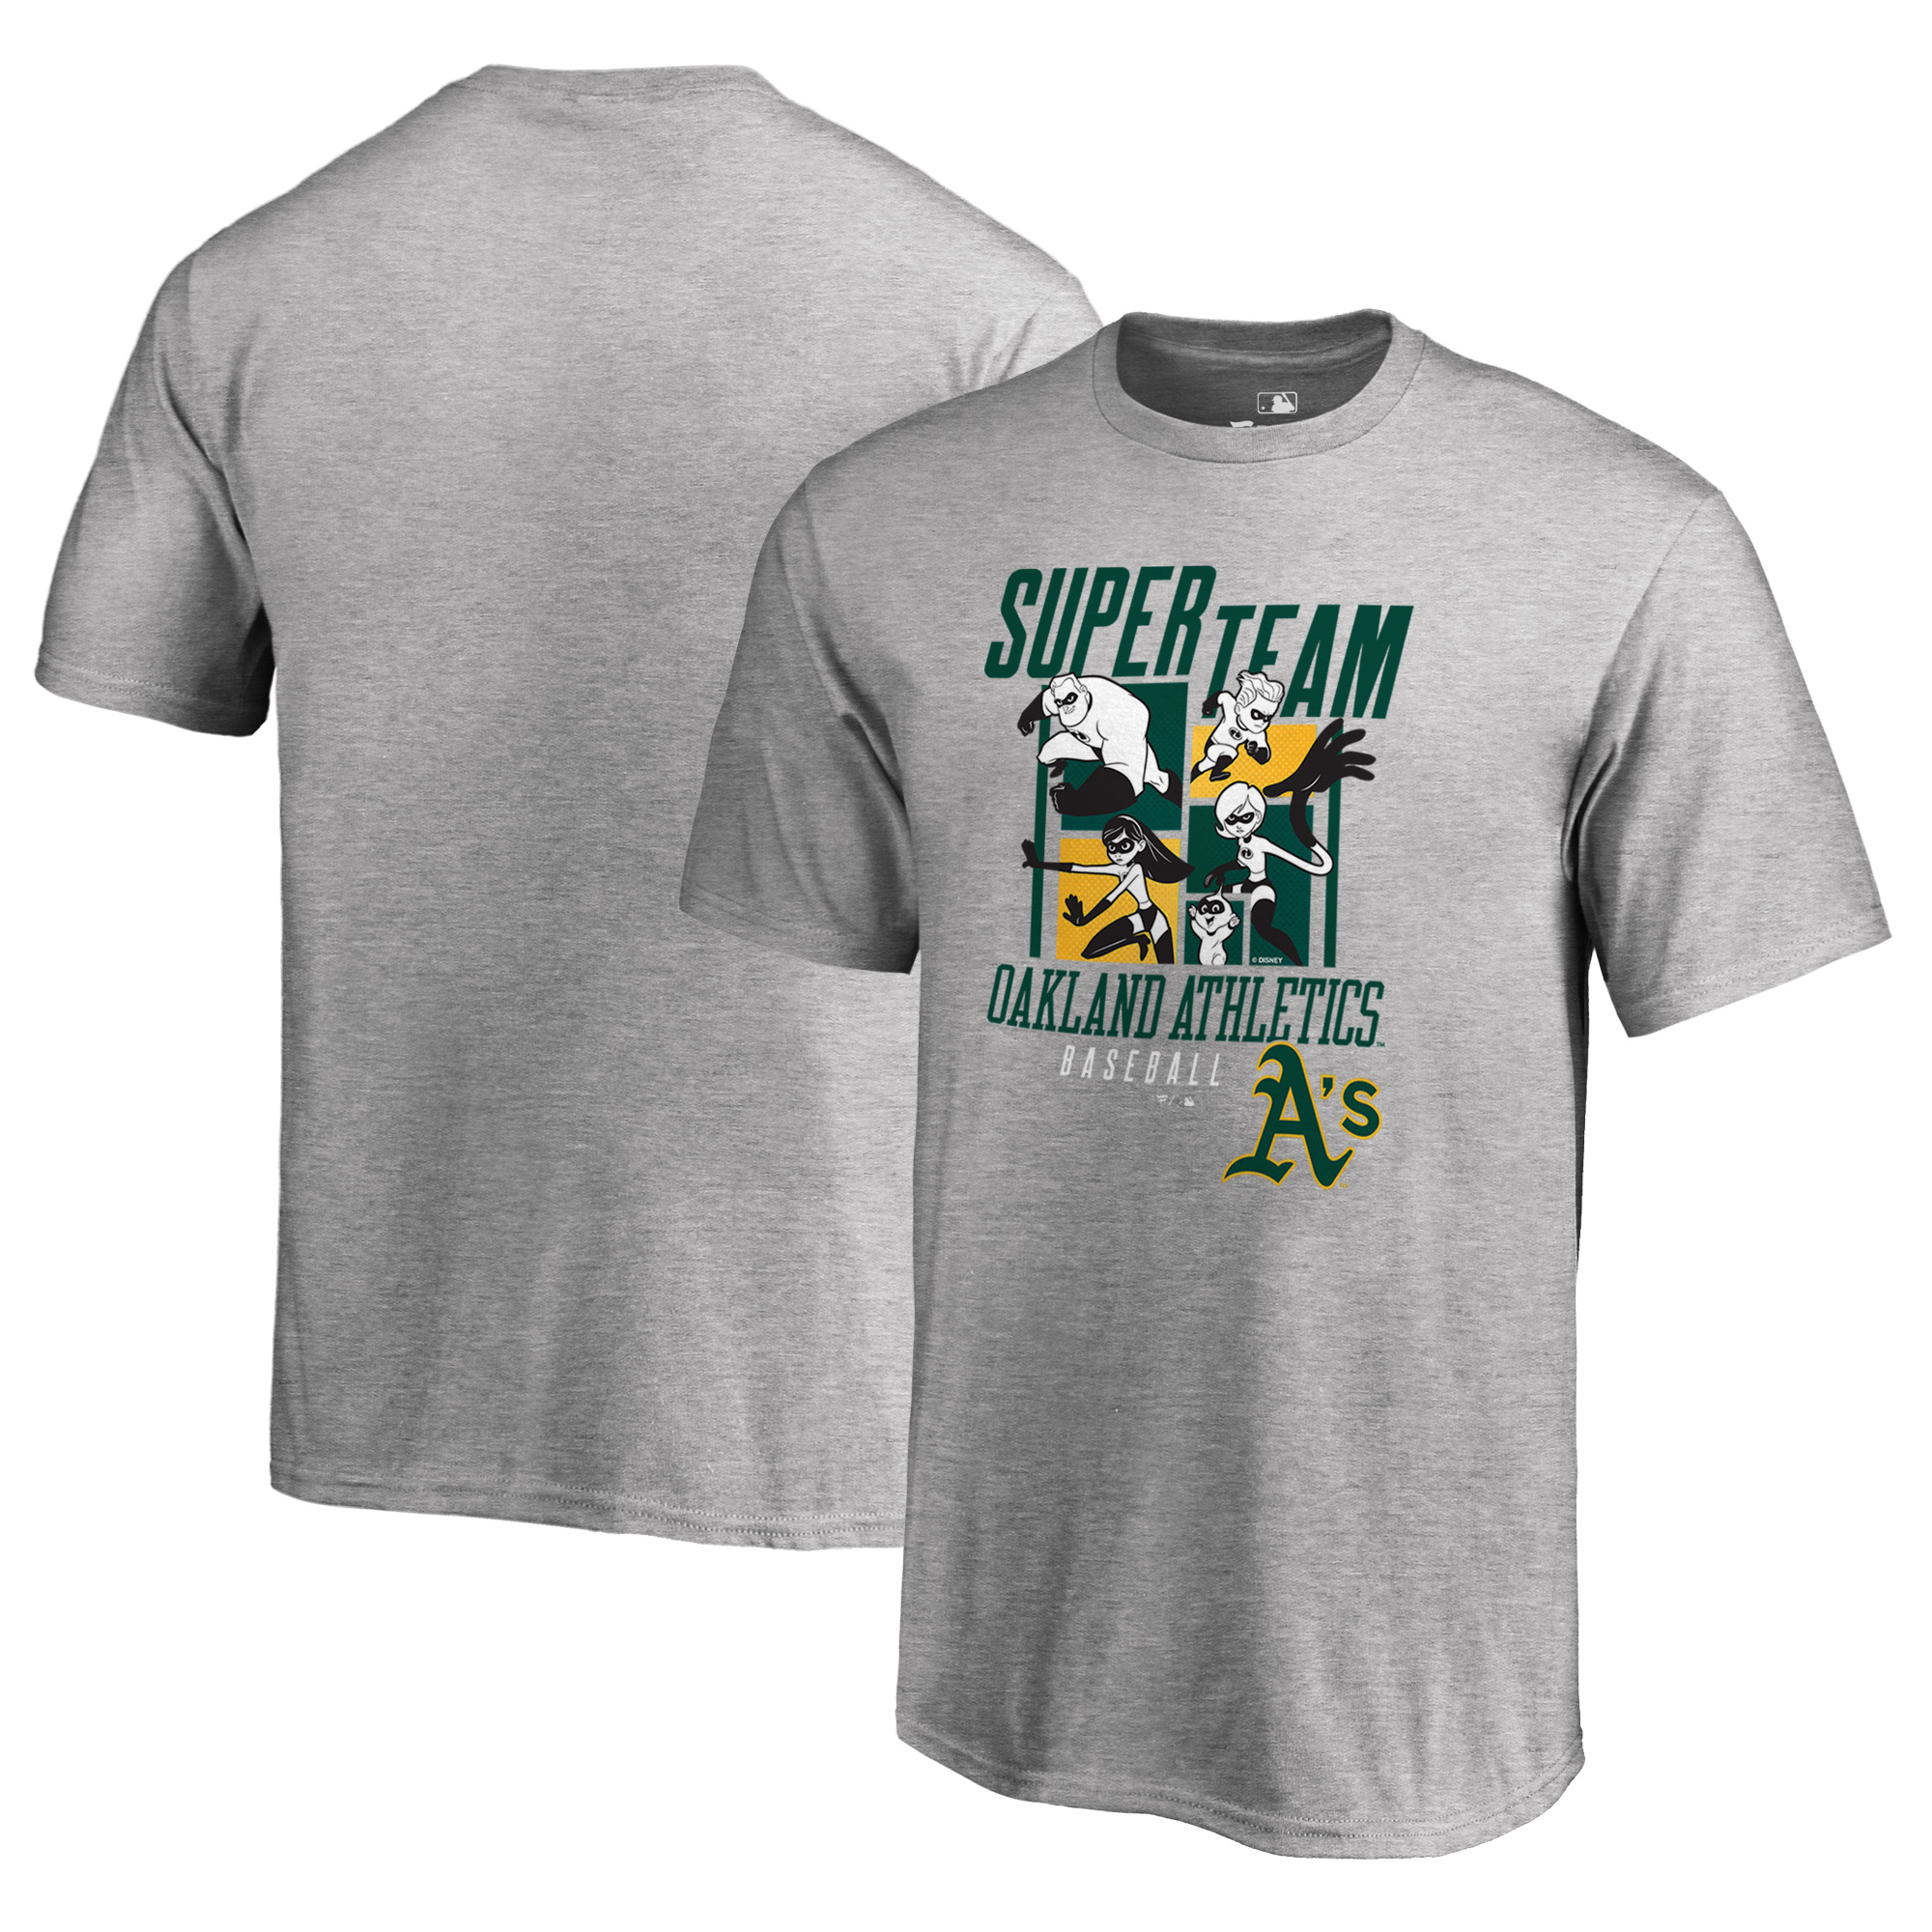 Oakland Athletics Fanatics Branded Youth Disney Pixar Incredibles Super Team T-Shirt - Heathered Gray